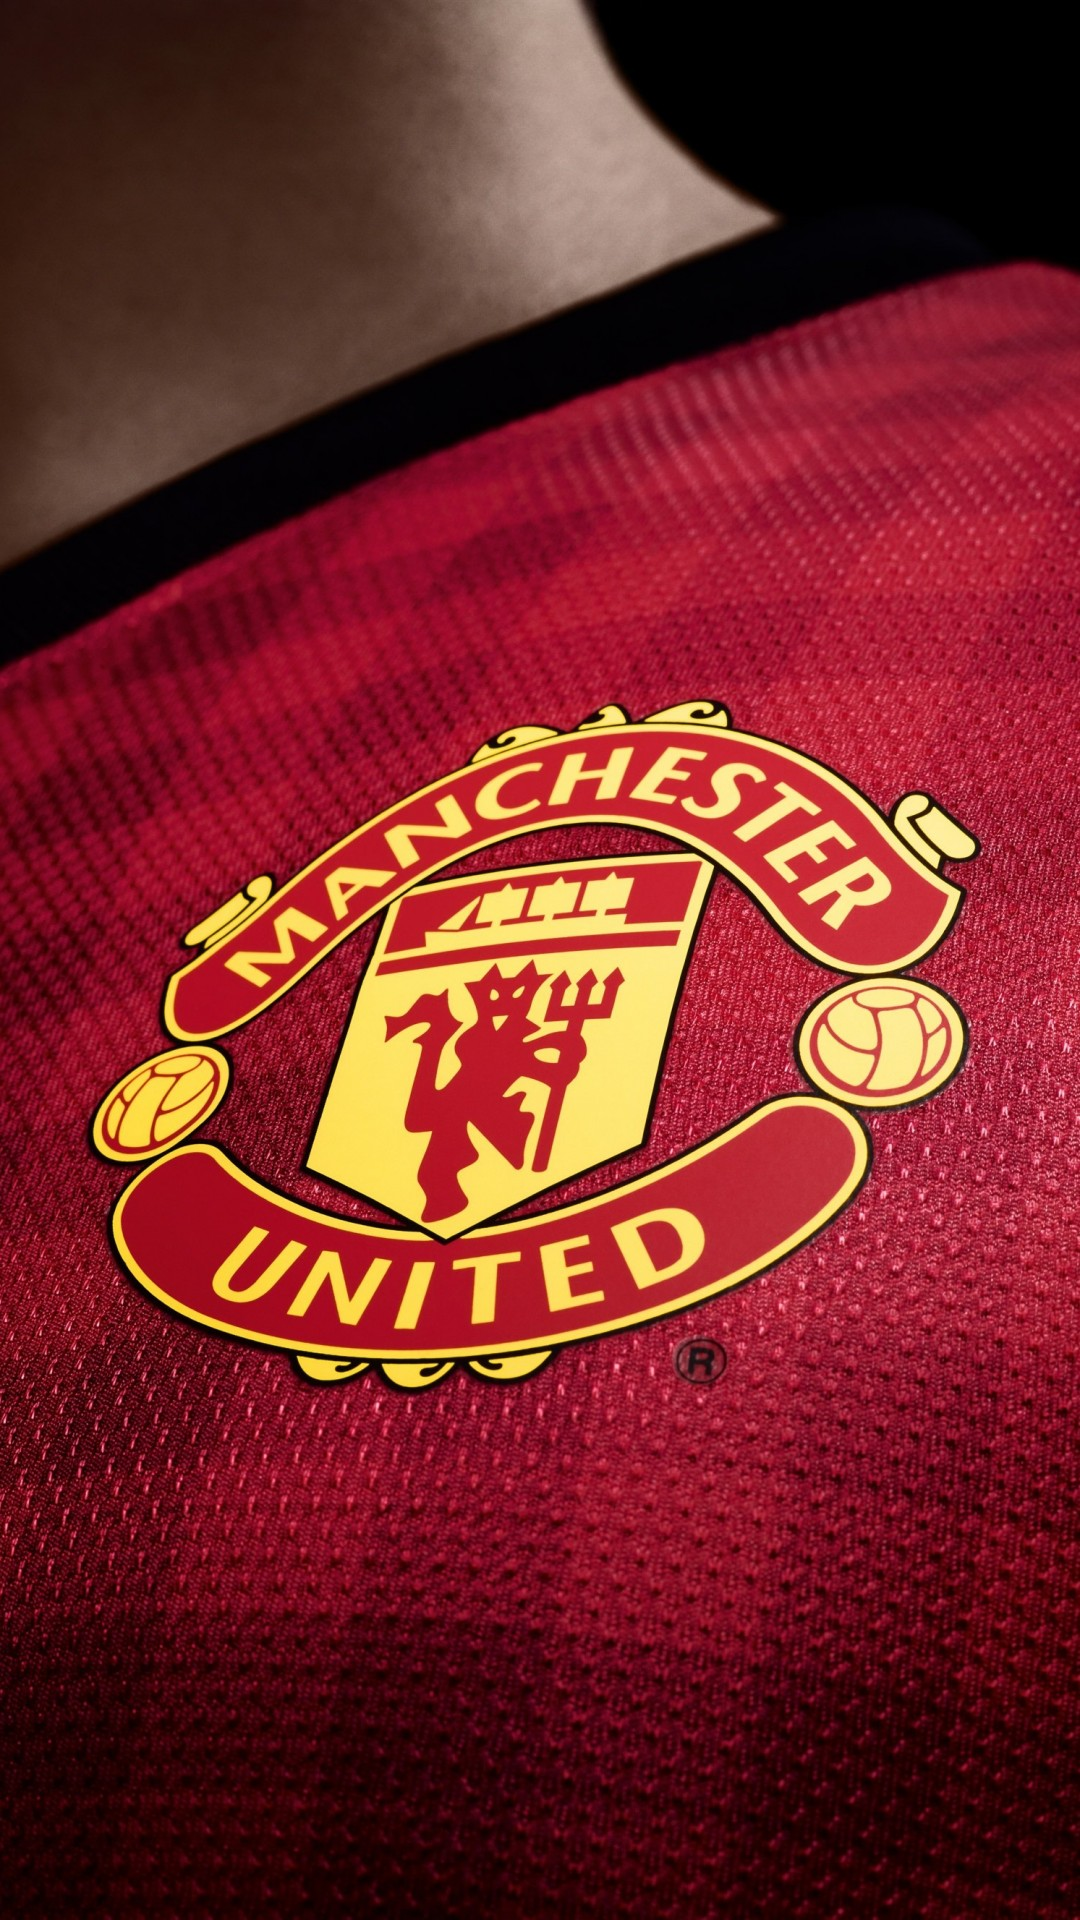 Manchester United Logo Shirt Wallpaper for HTC One